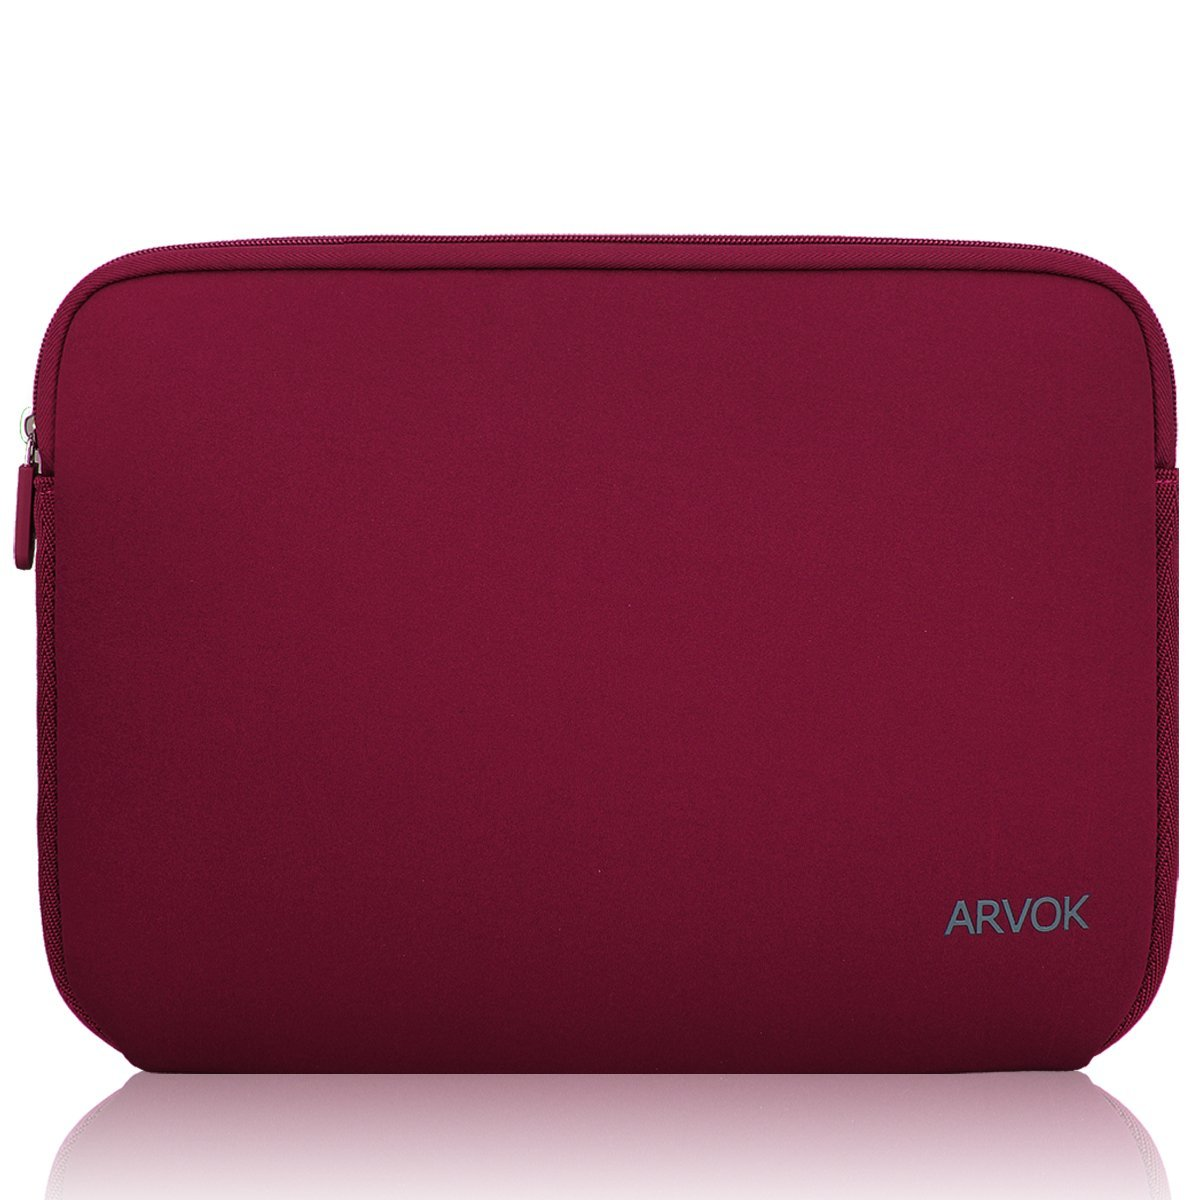 Arvok 13-14 Inch Laptop Sleeve Multi-color & Size Choices Case/Water-resistant Neoprene Notebook Computer Tablet Carrying Bag Cover, Wine Red